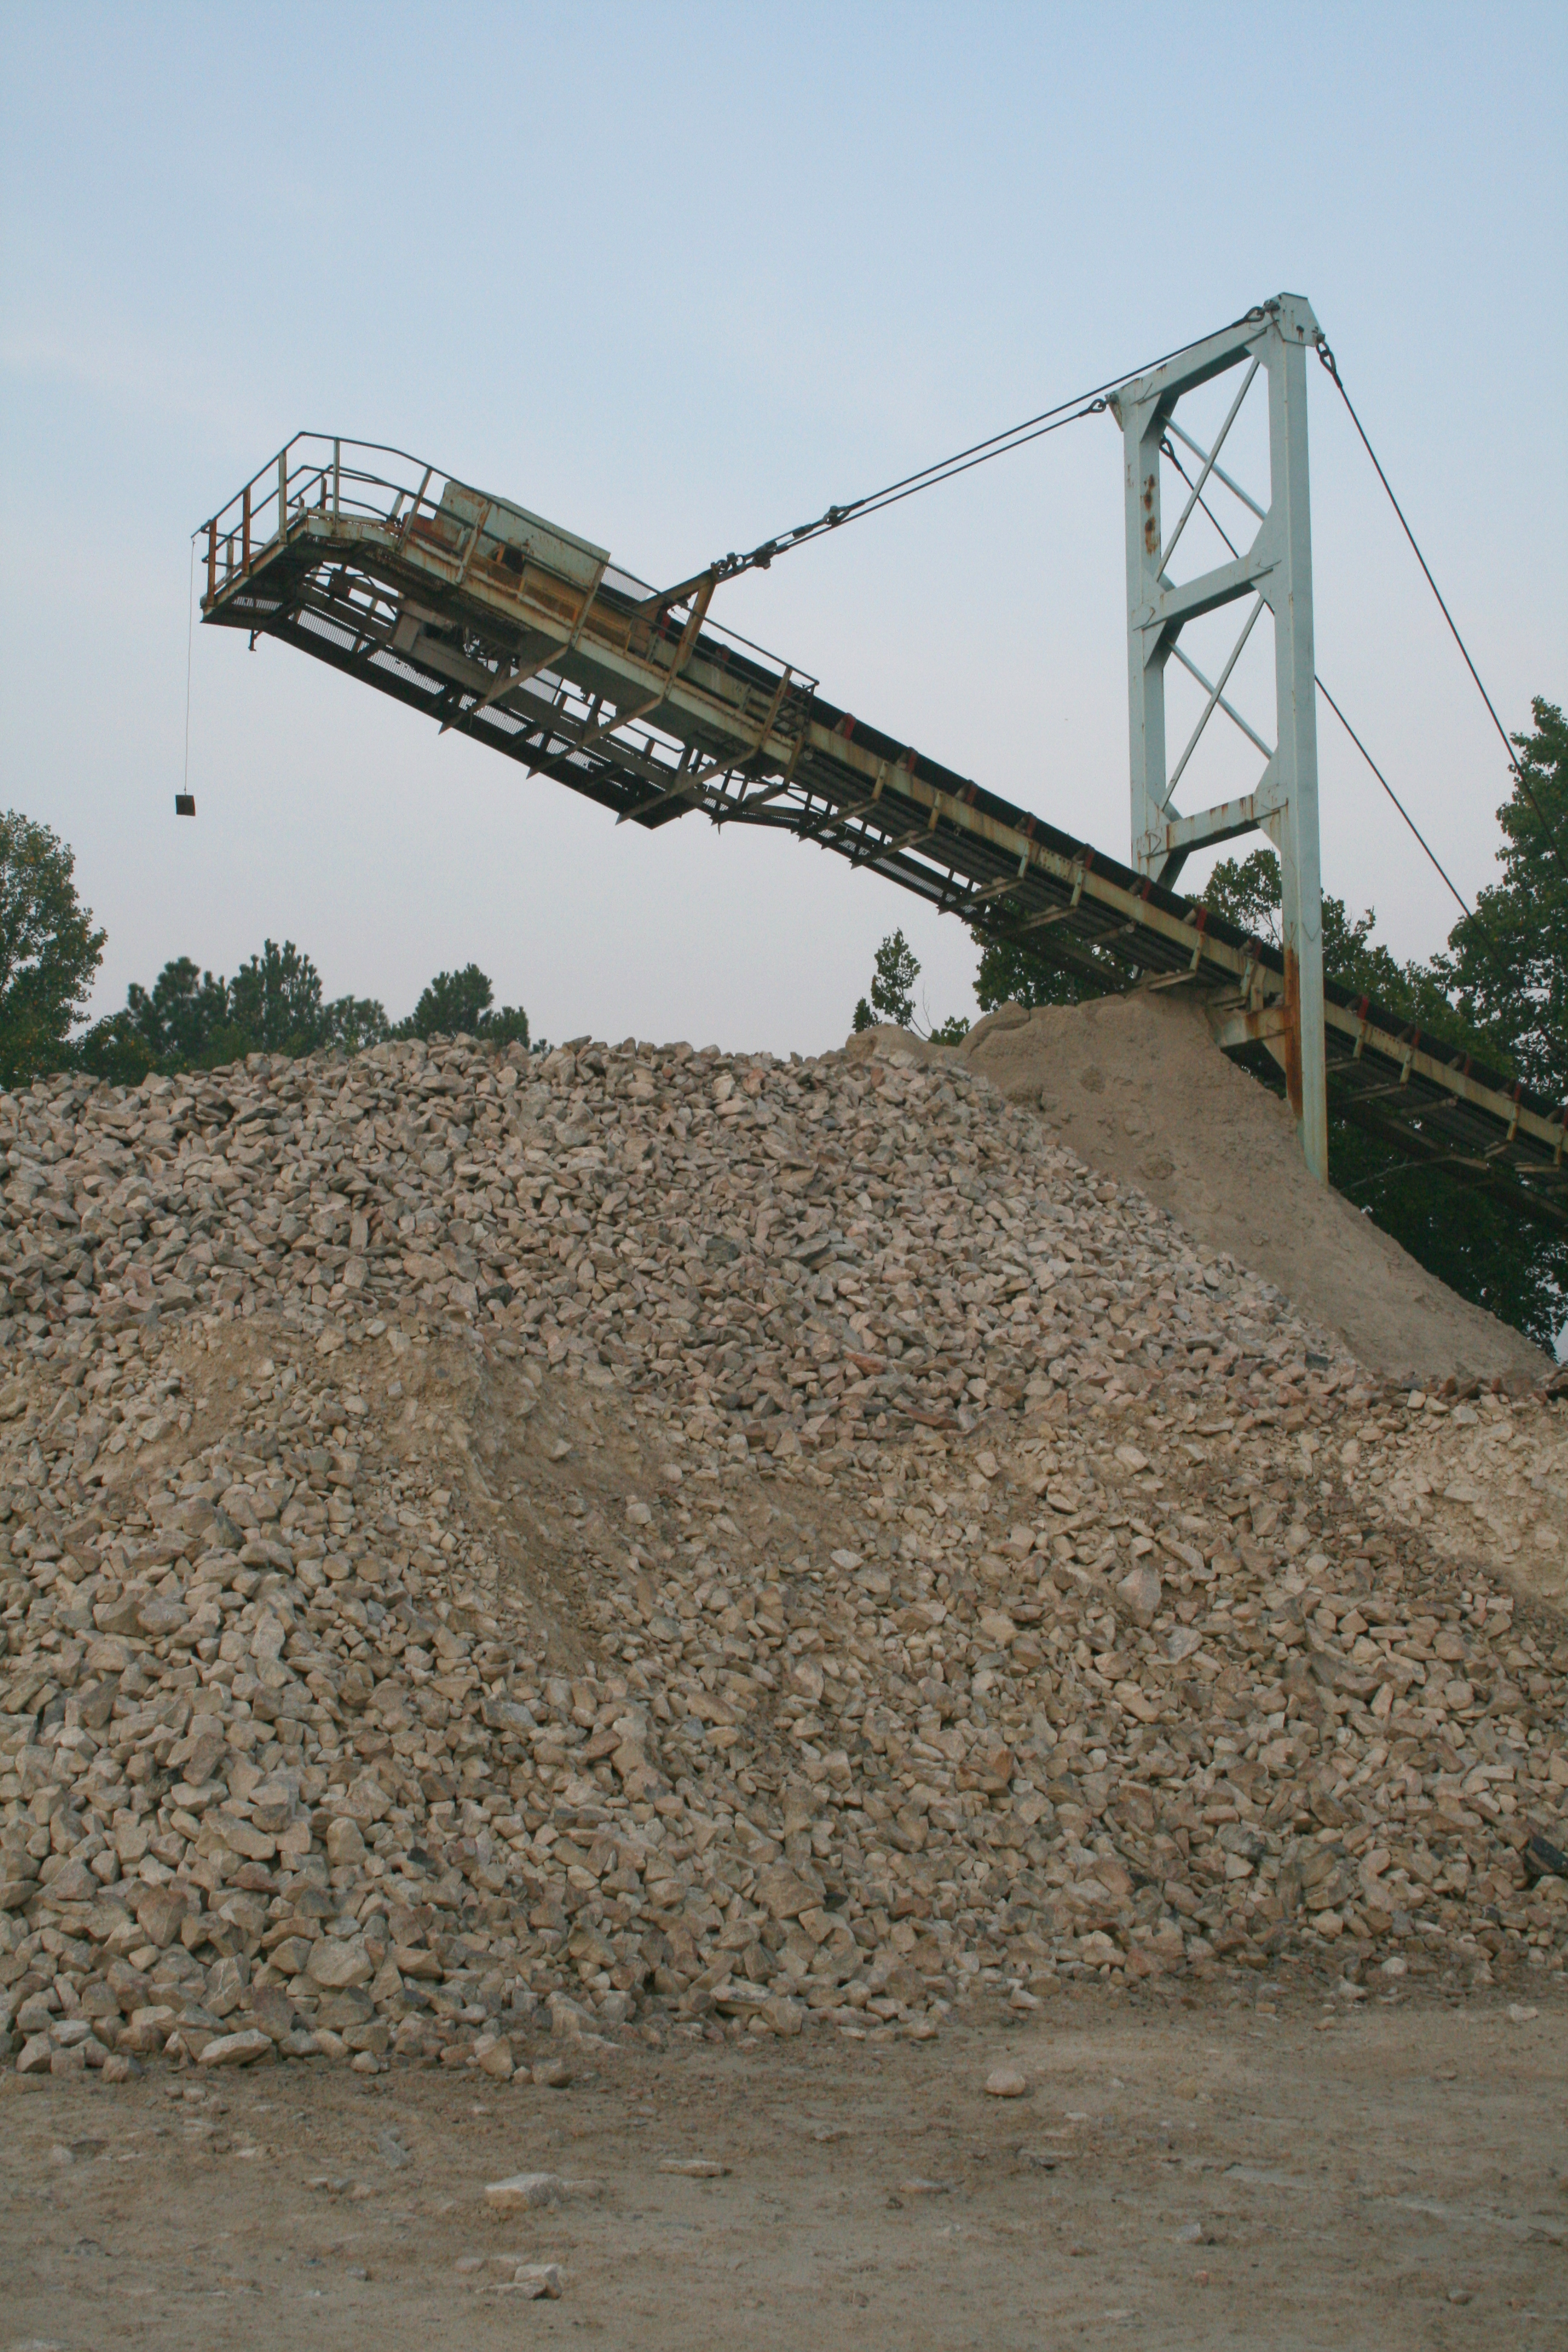 File:2008-08-17 Conveyor and rock pile at Crabtree Quarry at